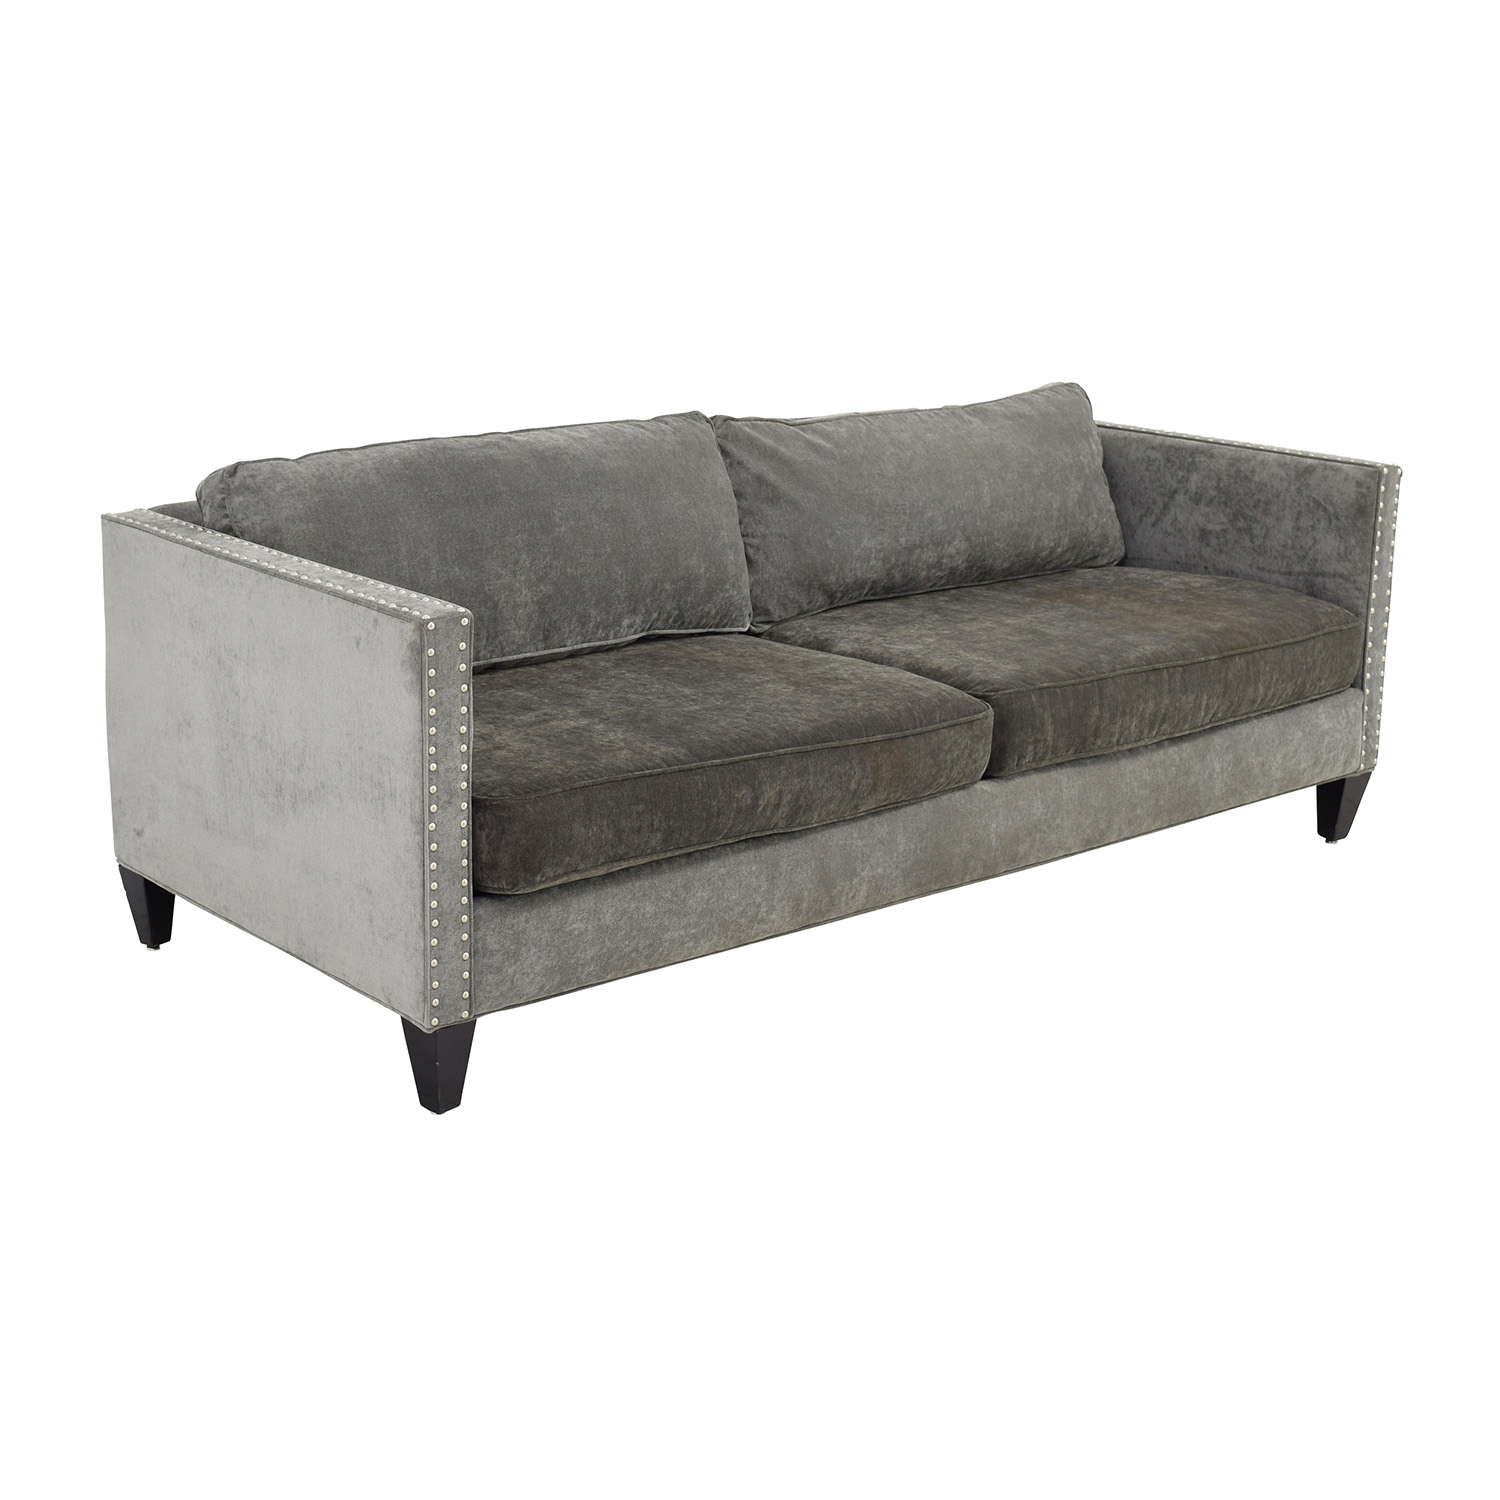 Grey studded sofa 30 off fl on white three cushion sofa for Studded leather sofa